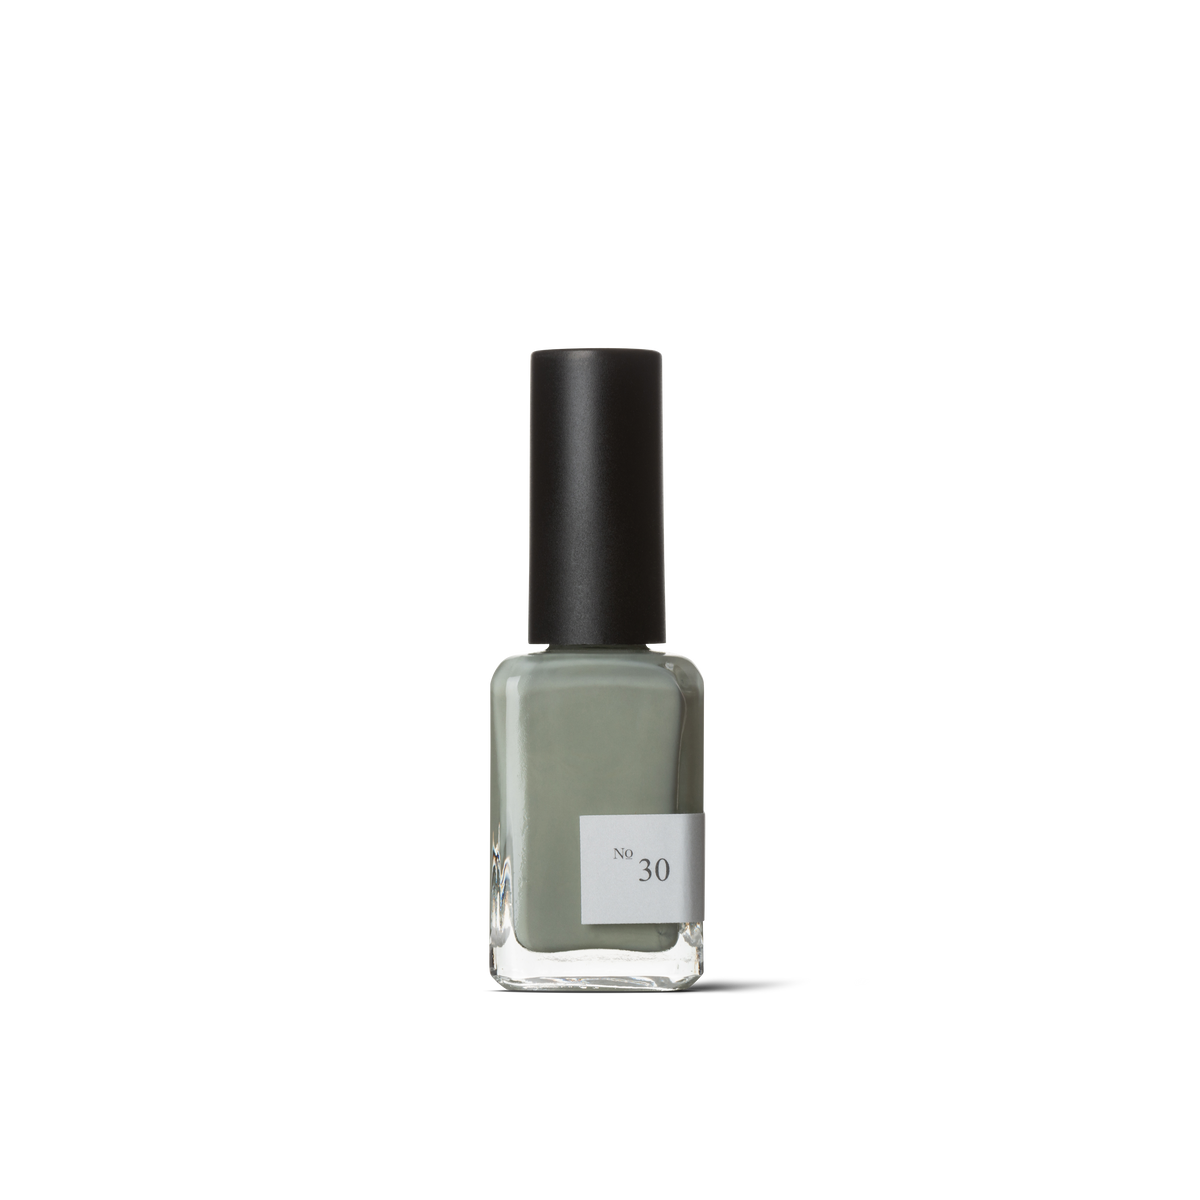 Nailpolish no. 30 (14 ml)